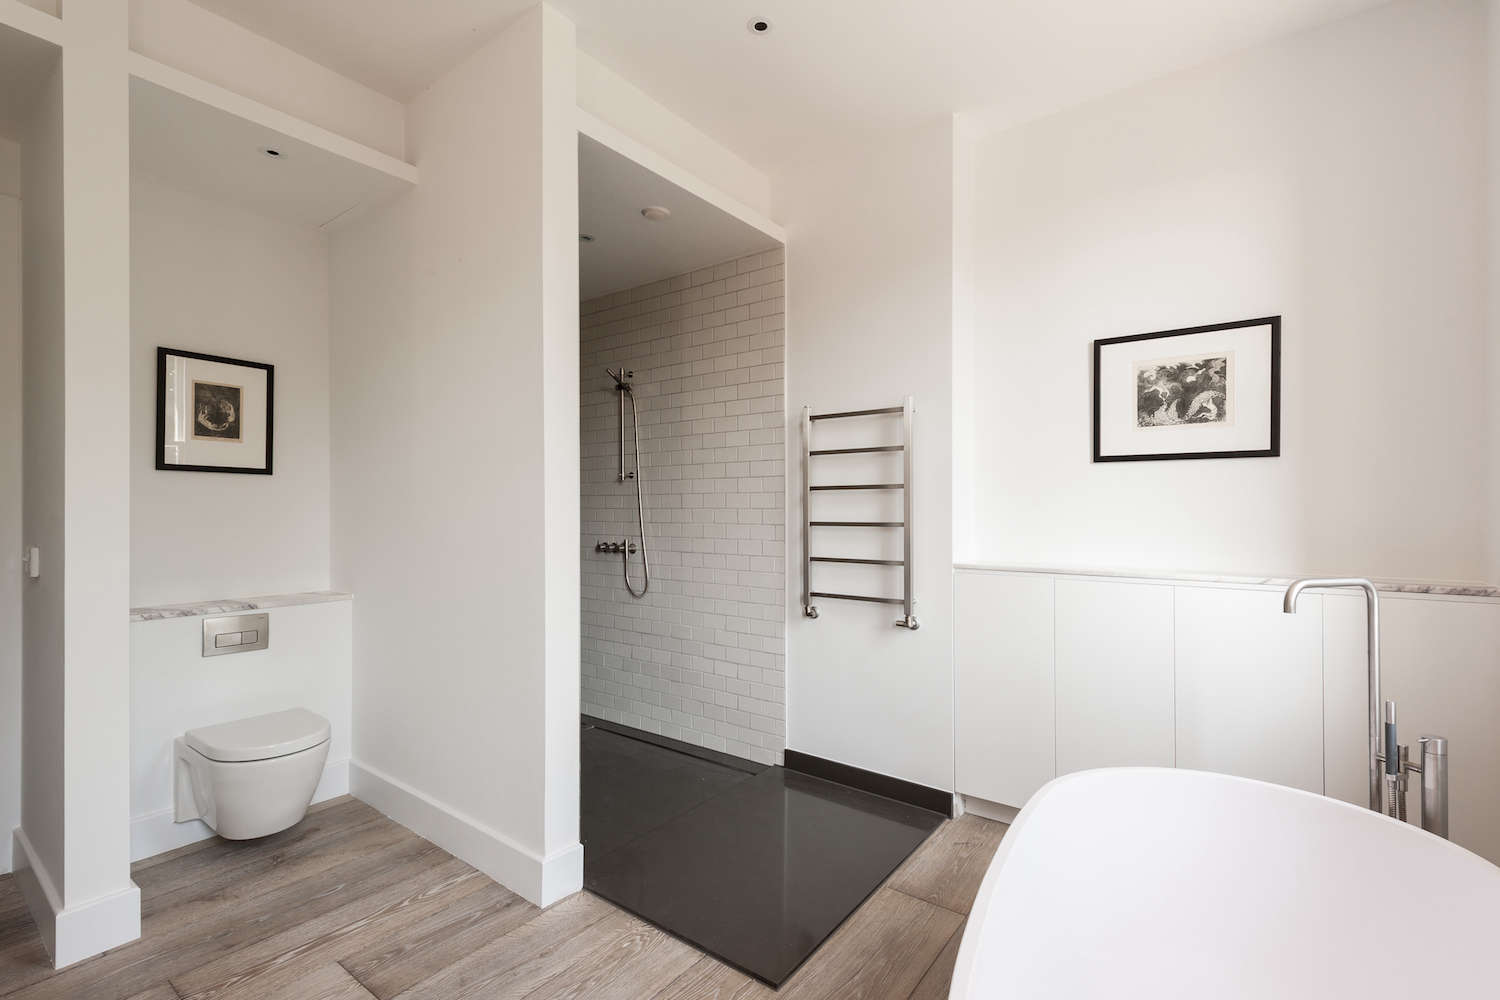 Modern White Bathroom With Wall Hung Toilet And Freestanding Bathtub